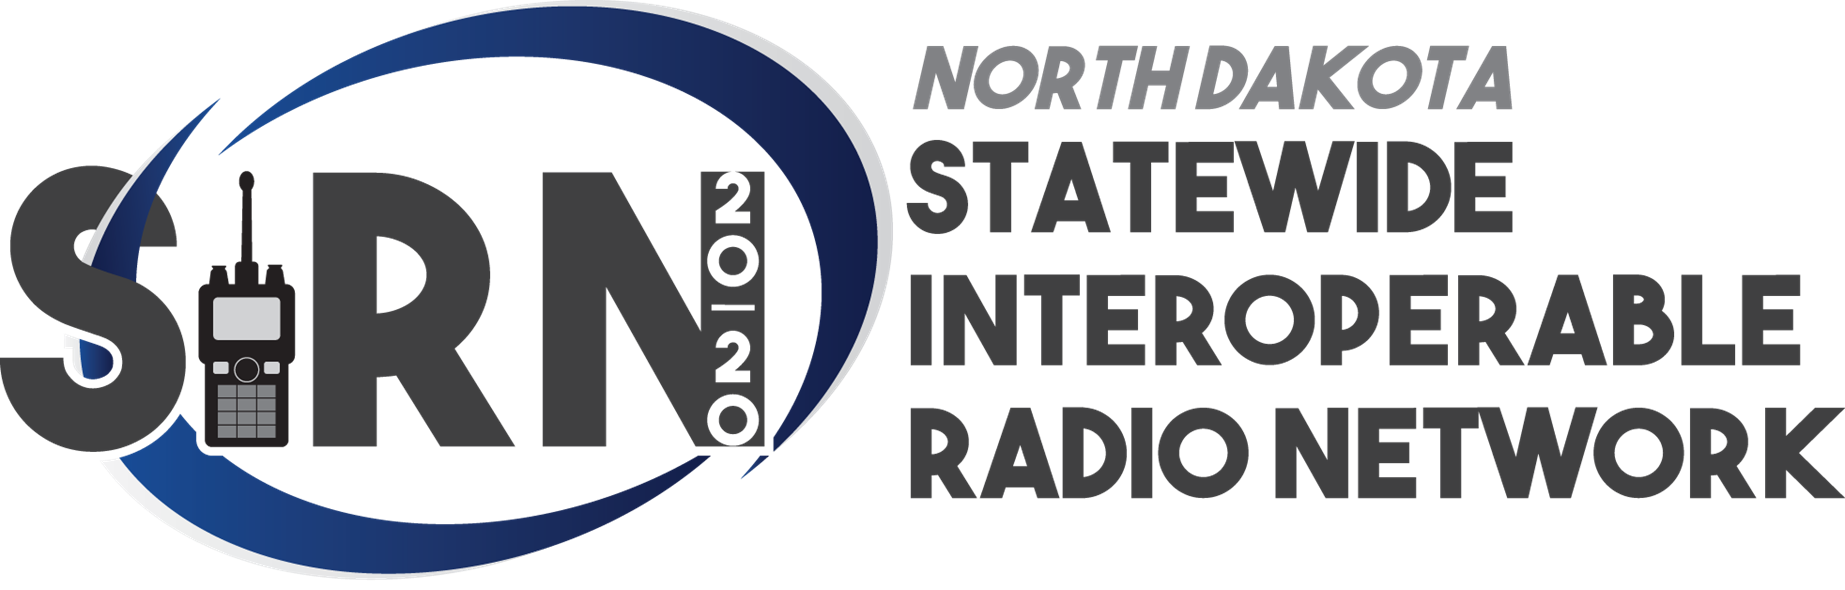 ND Statewide Interoperable Radio Network